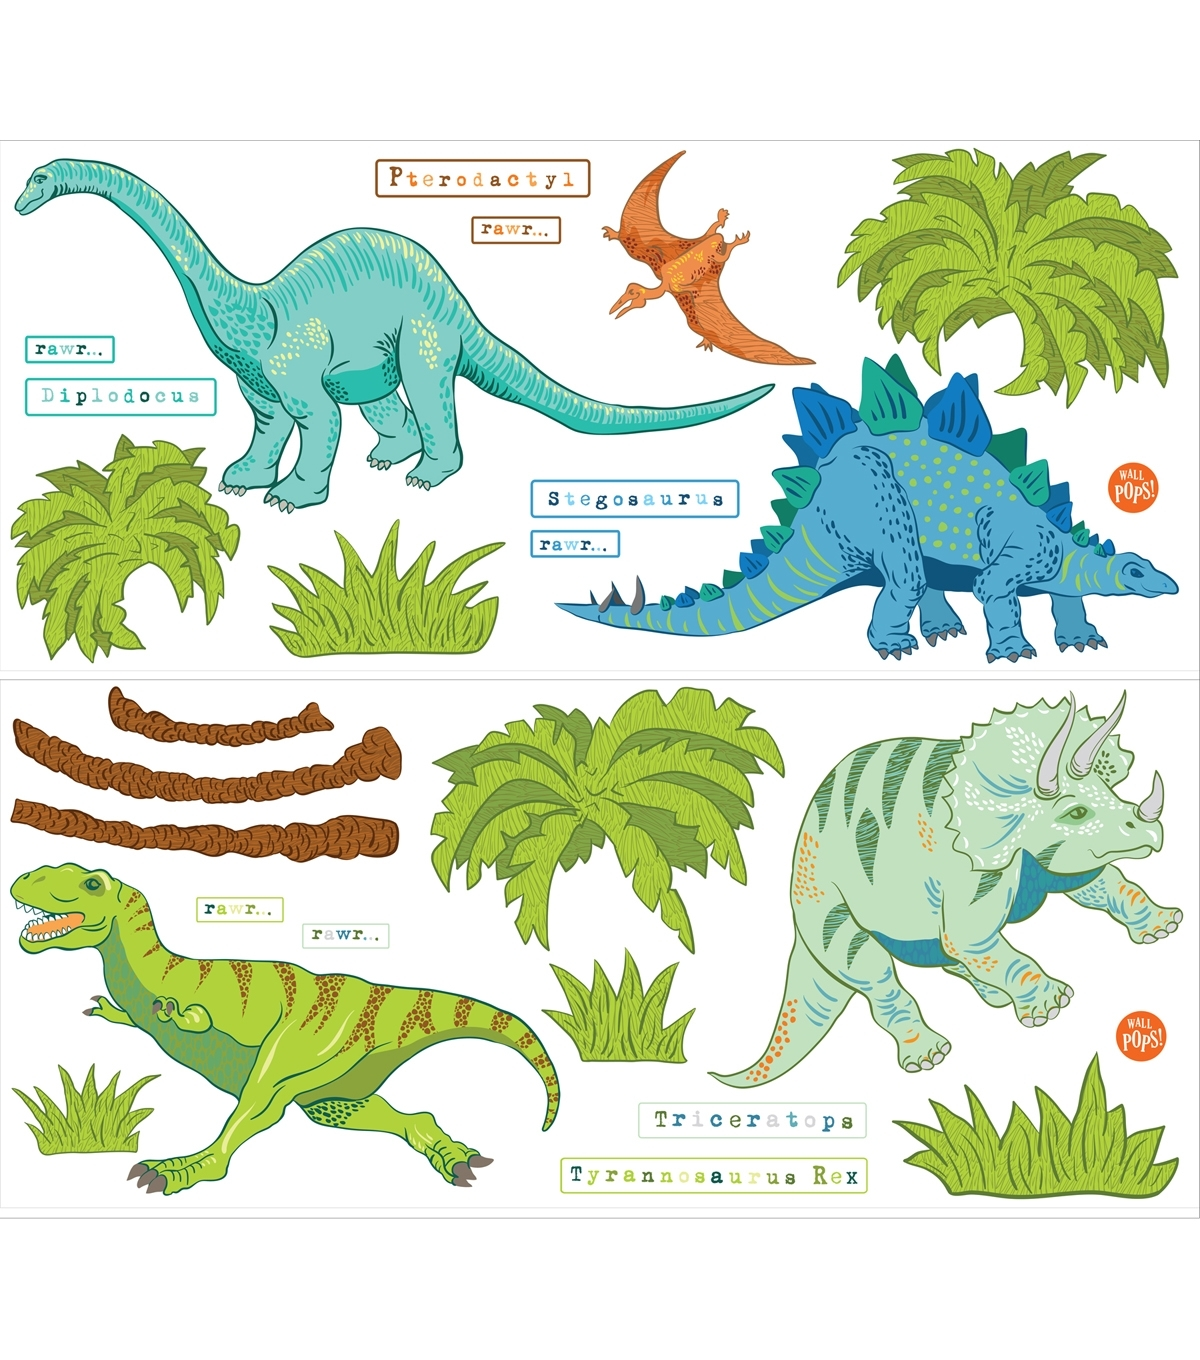 Wall Pops Dinosaur Expedition Wall Art Decal Kit, 42 Piece Set | Joann Throughout Most Popular Dinosaur Wall Art (Gallery 15 of 20)